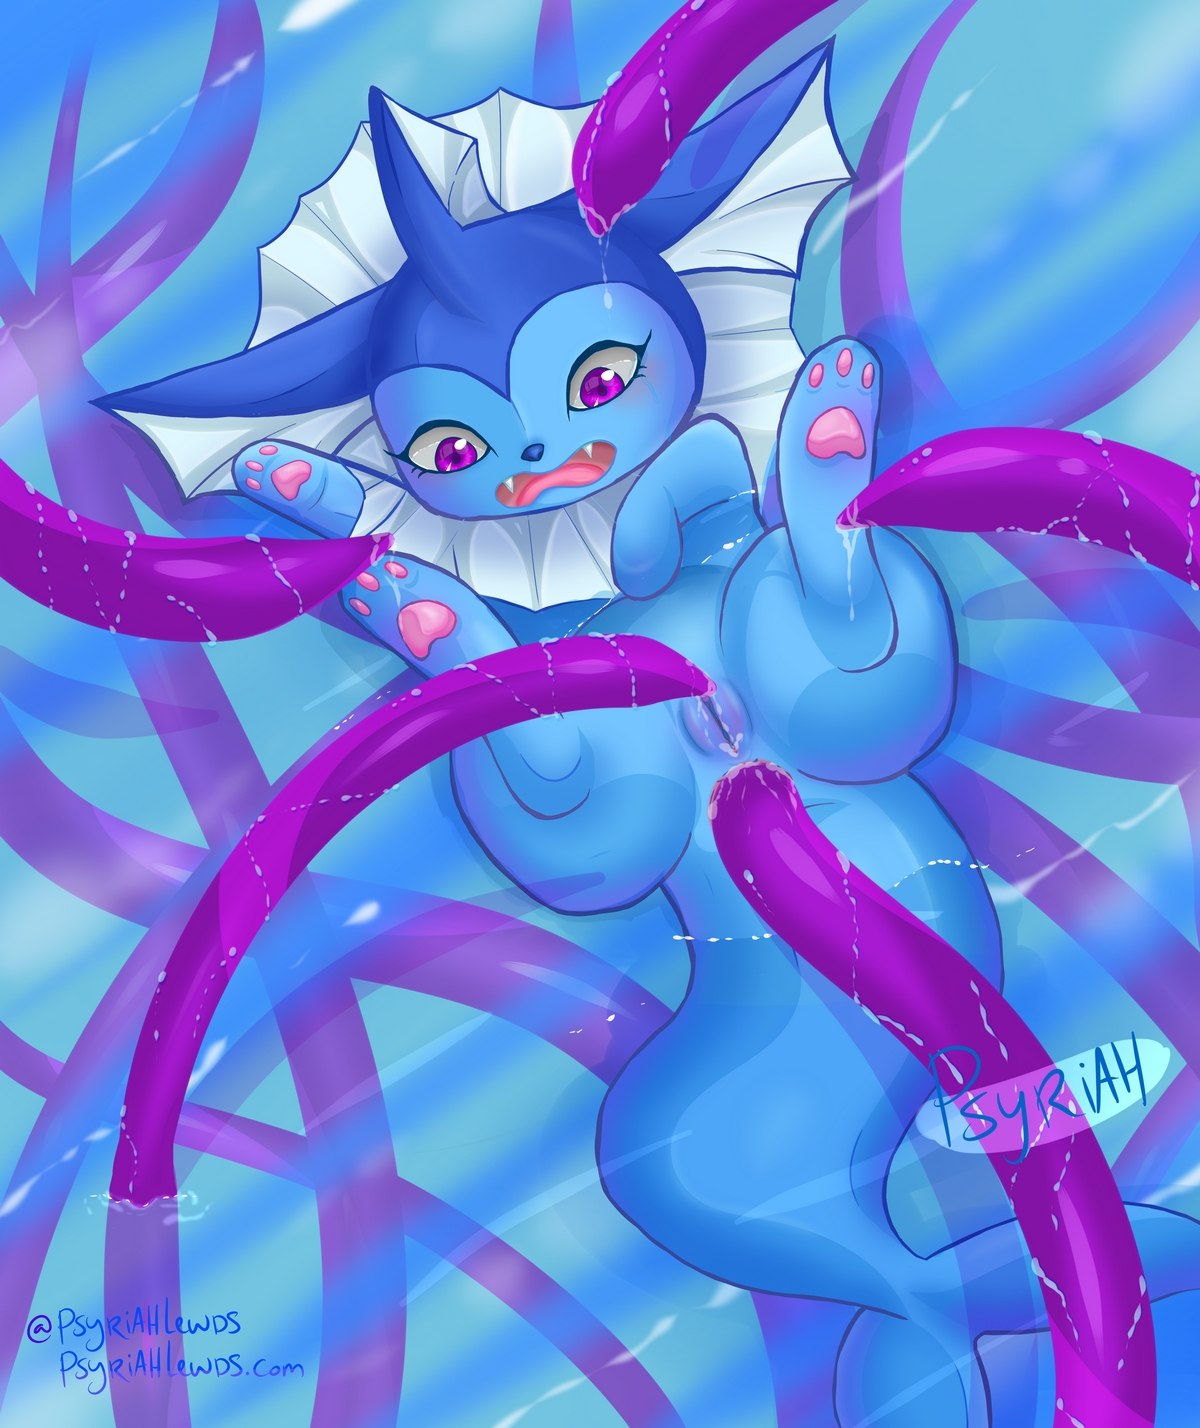 Furry Hentai Art of Vaporeon getting fucked by tentacles